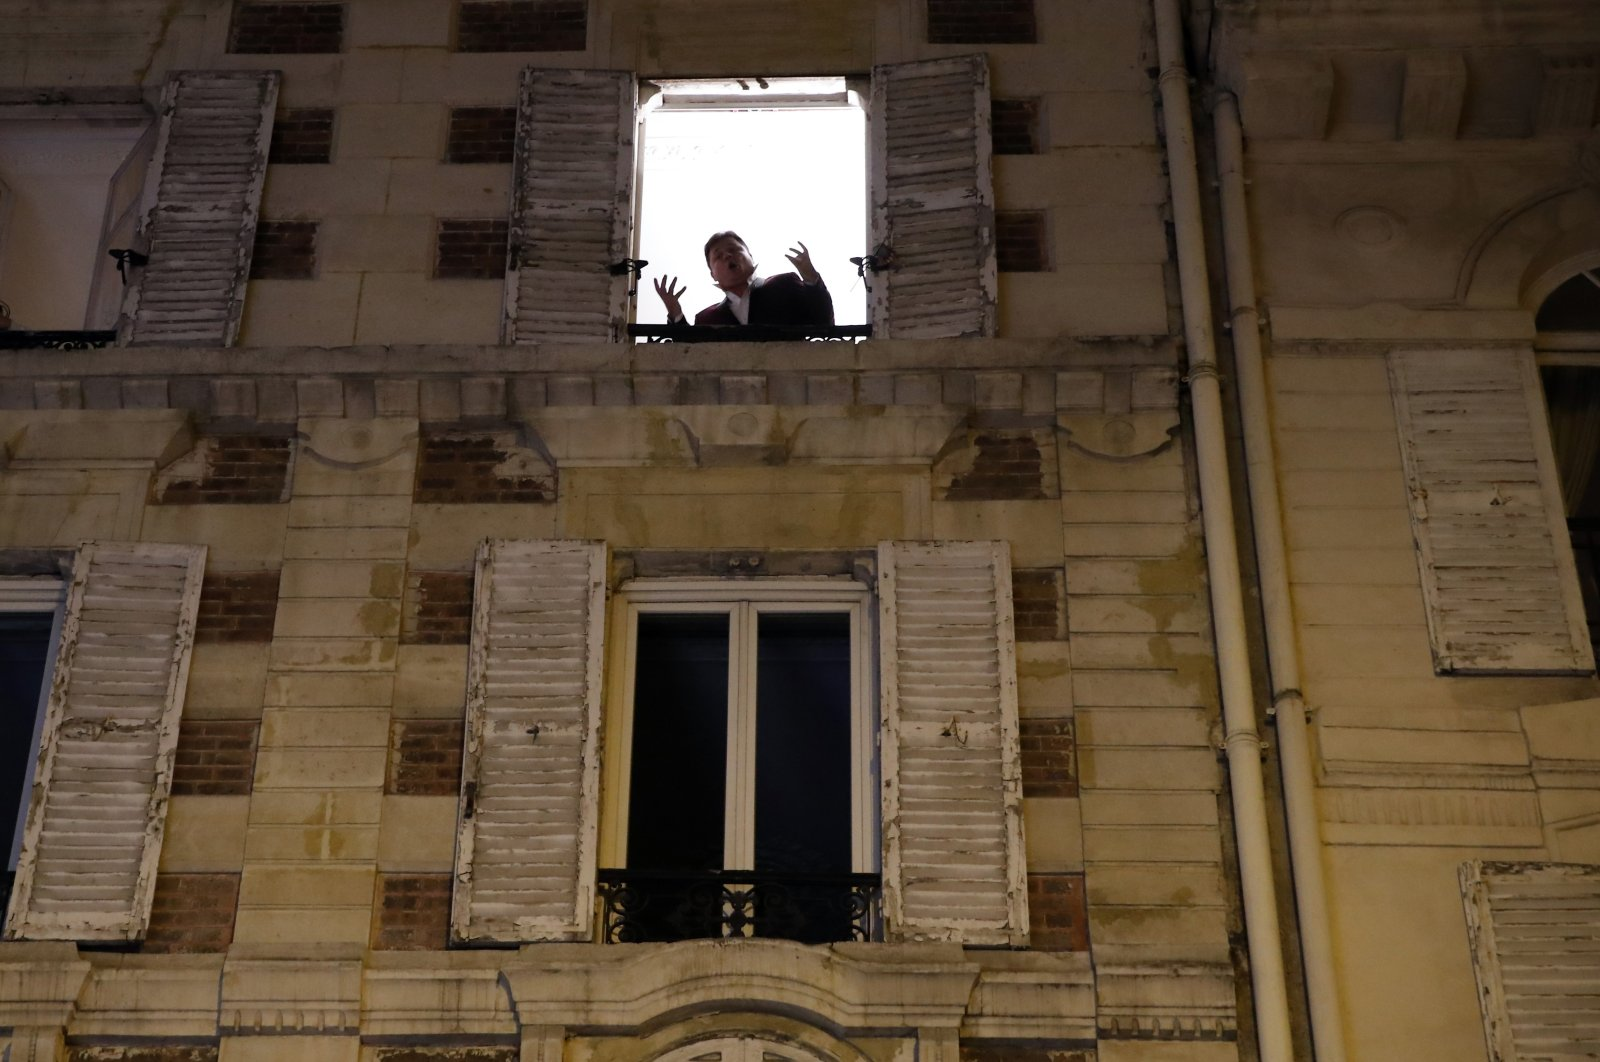 French tenor singer Stephane Senechal sings at dusk, the U.S. national anthem and Tosca of Puccini, from his apartment window during the monthlong partial lockdown to stop fast-rising virus hospitalizations and deaths, in Paris, Monday, Nov. 09, 2020. (AP Photo)